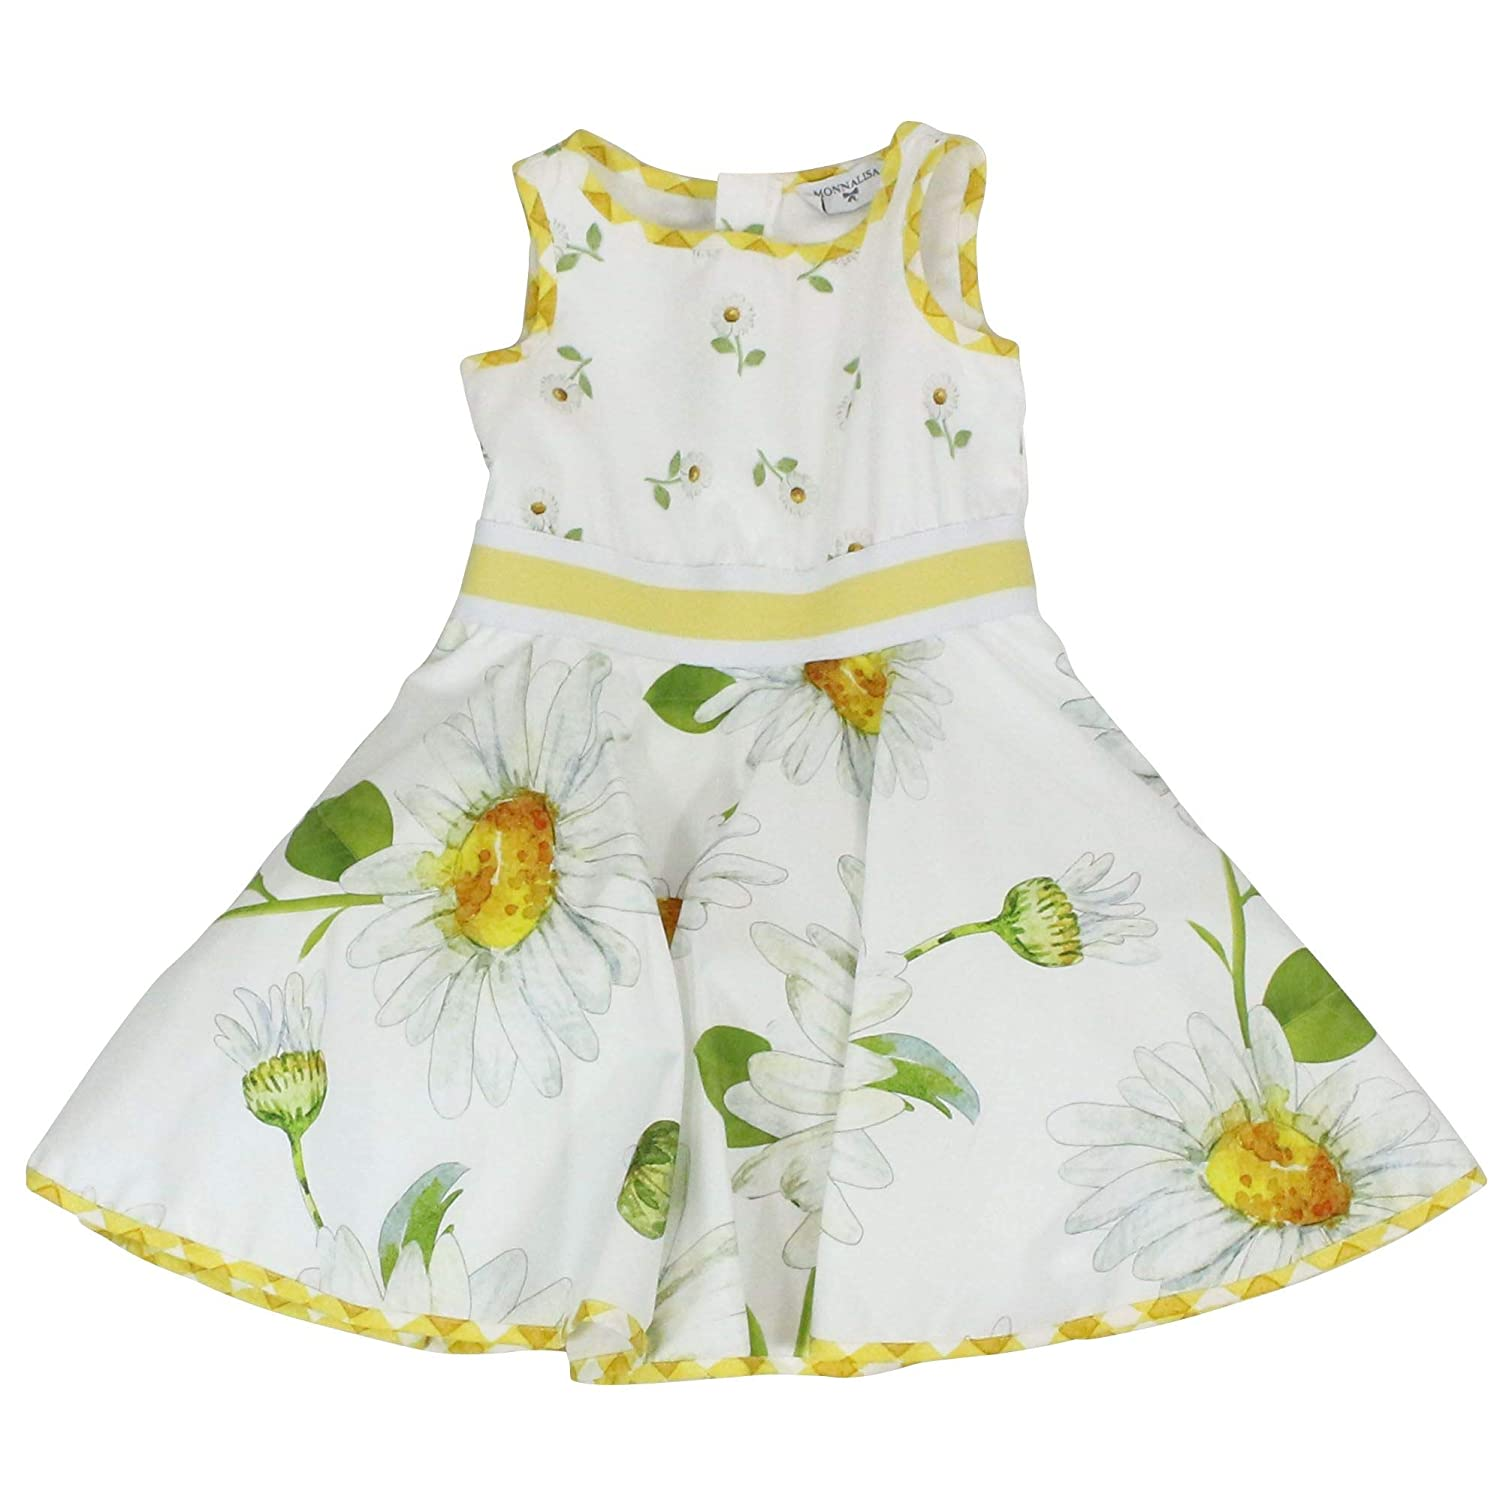 Taille Fabricant 8yrs Monnalisa Fille 11391036540099 Blanc Coton Robe